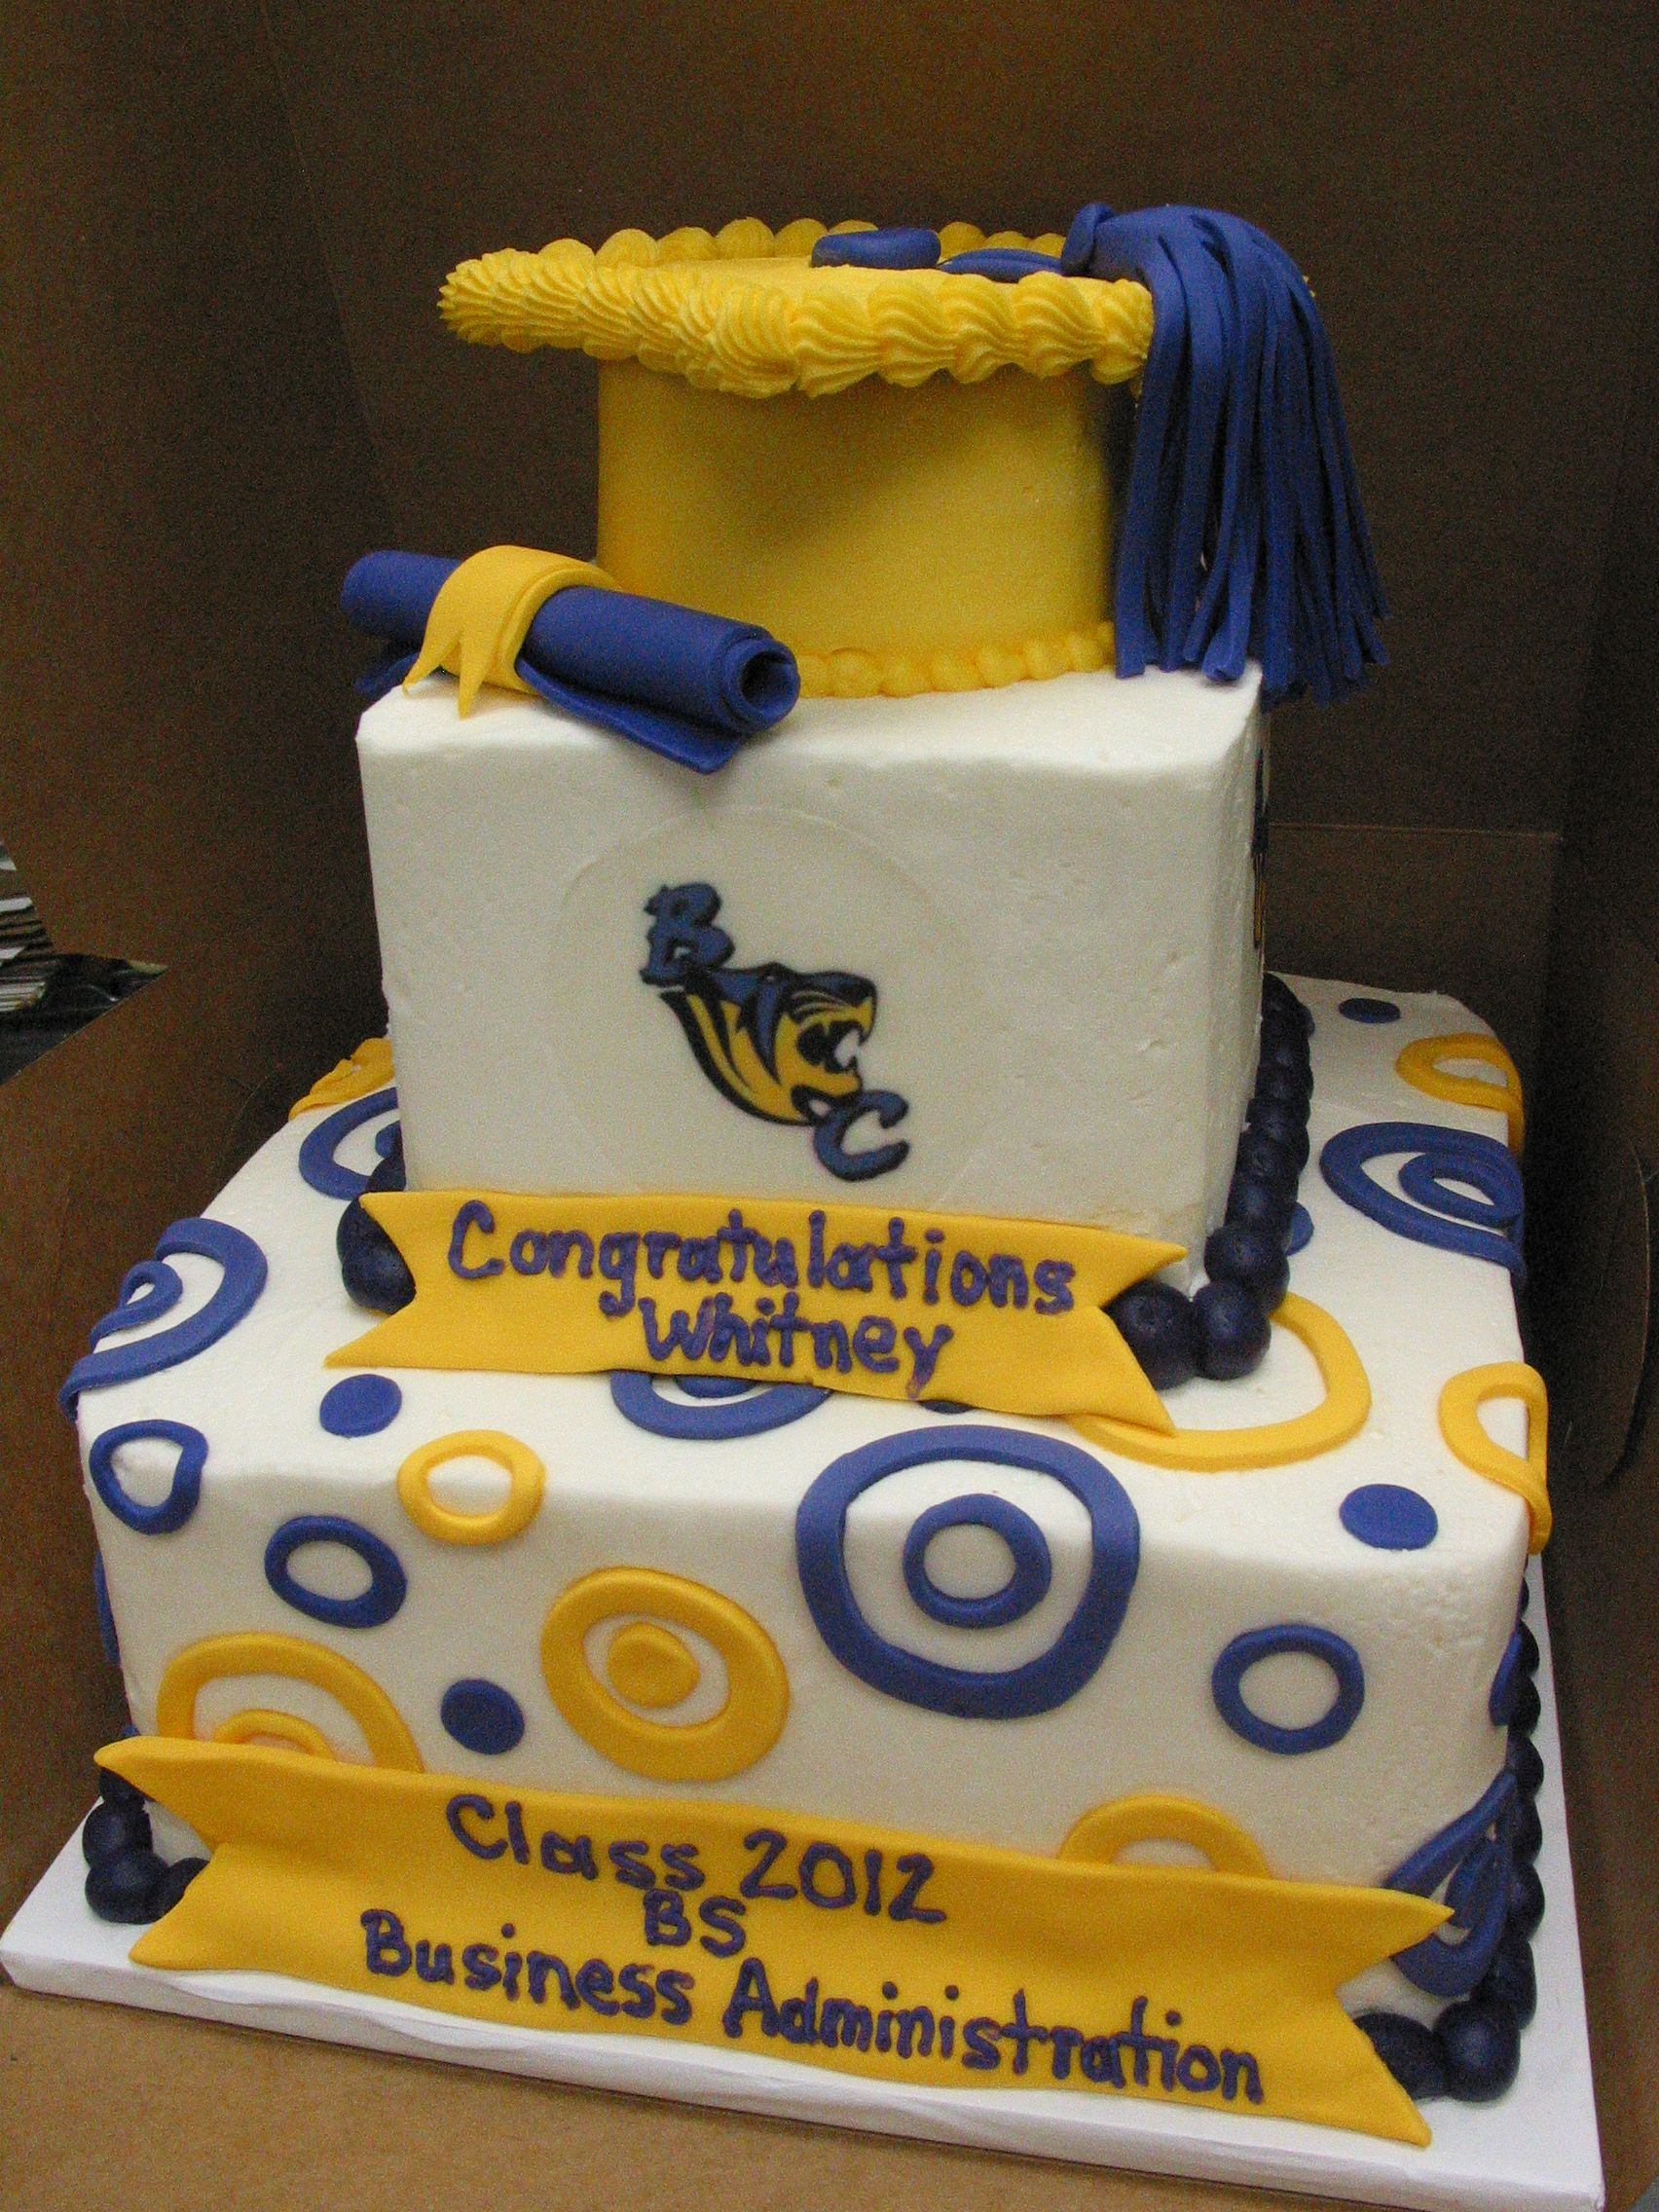 Graduation Cake Cap And Gown Diploma Tassel Sports Logo Tier Celebration Congratulations